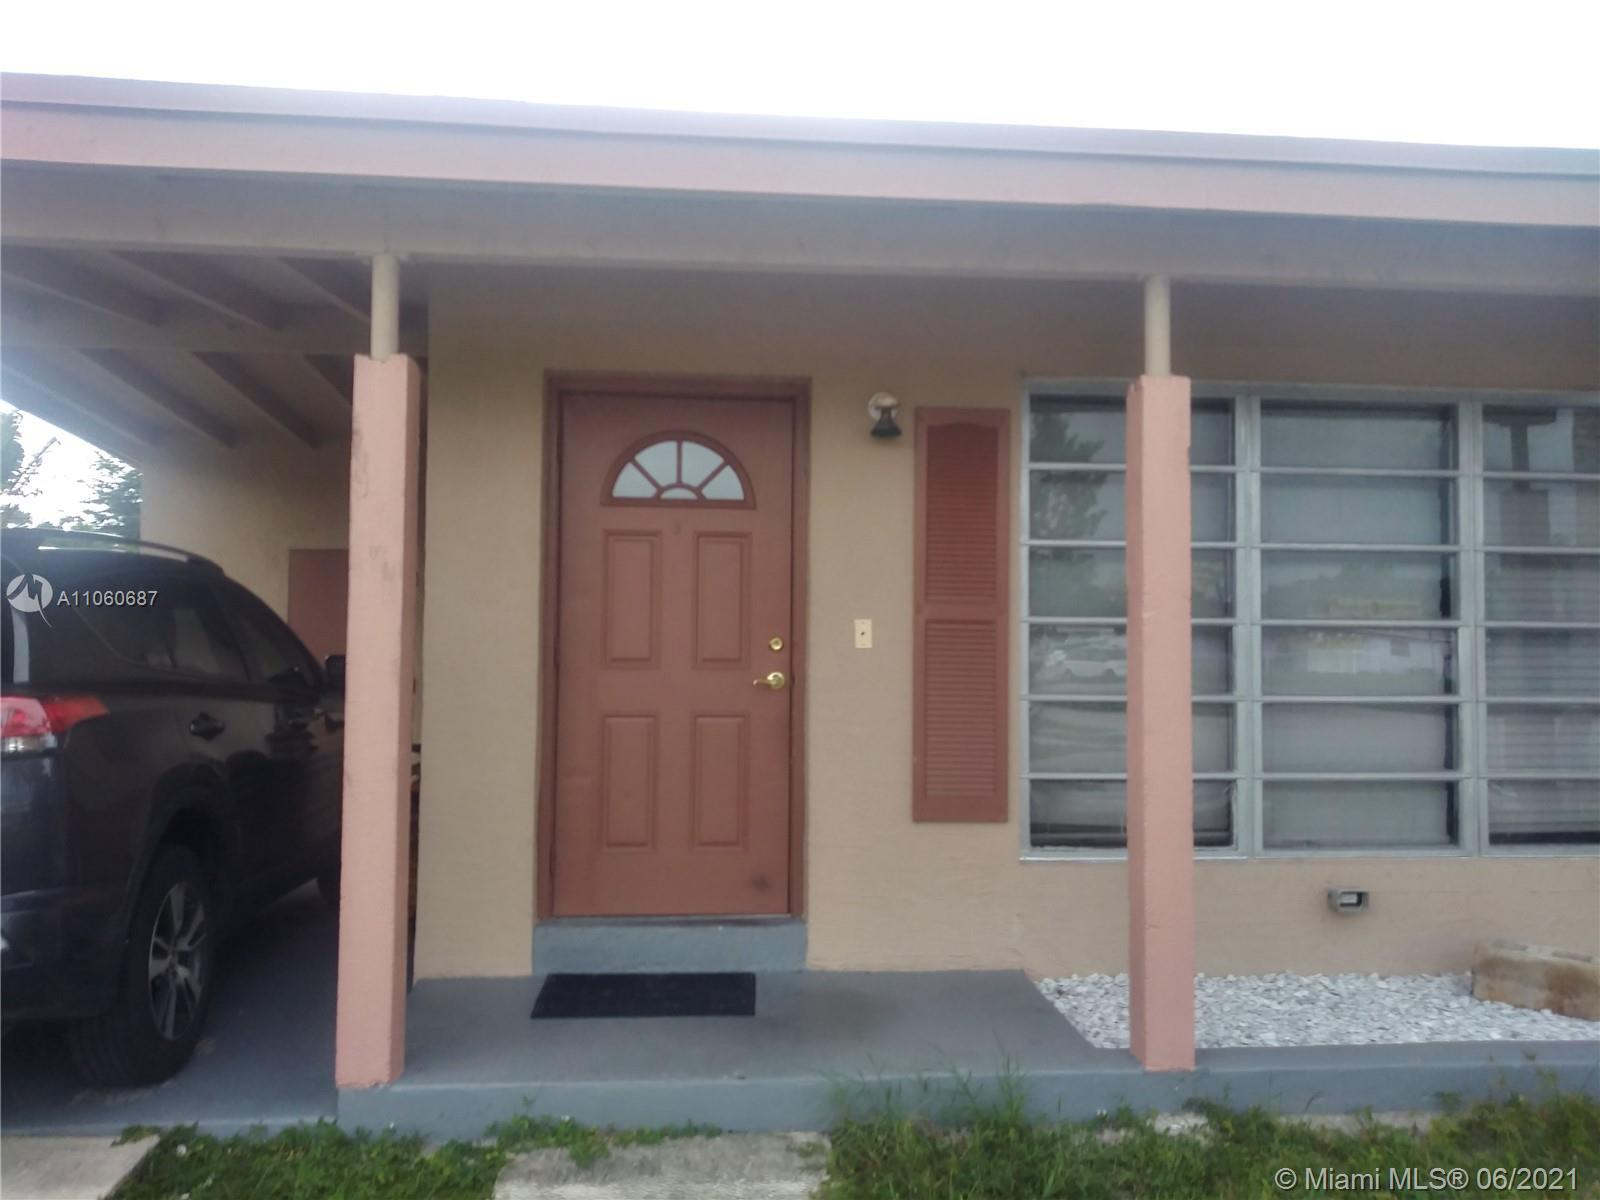 Back on the market, property was appraised @ 290 Great home in pompano near US1, 2/1 plus a den. Pr